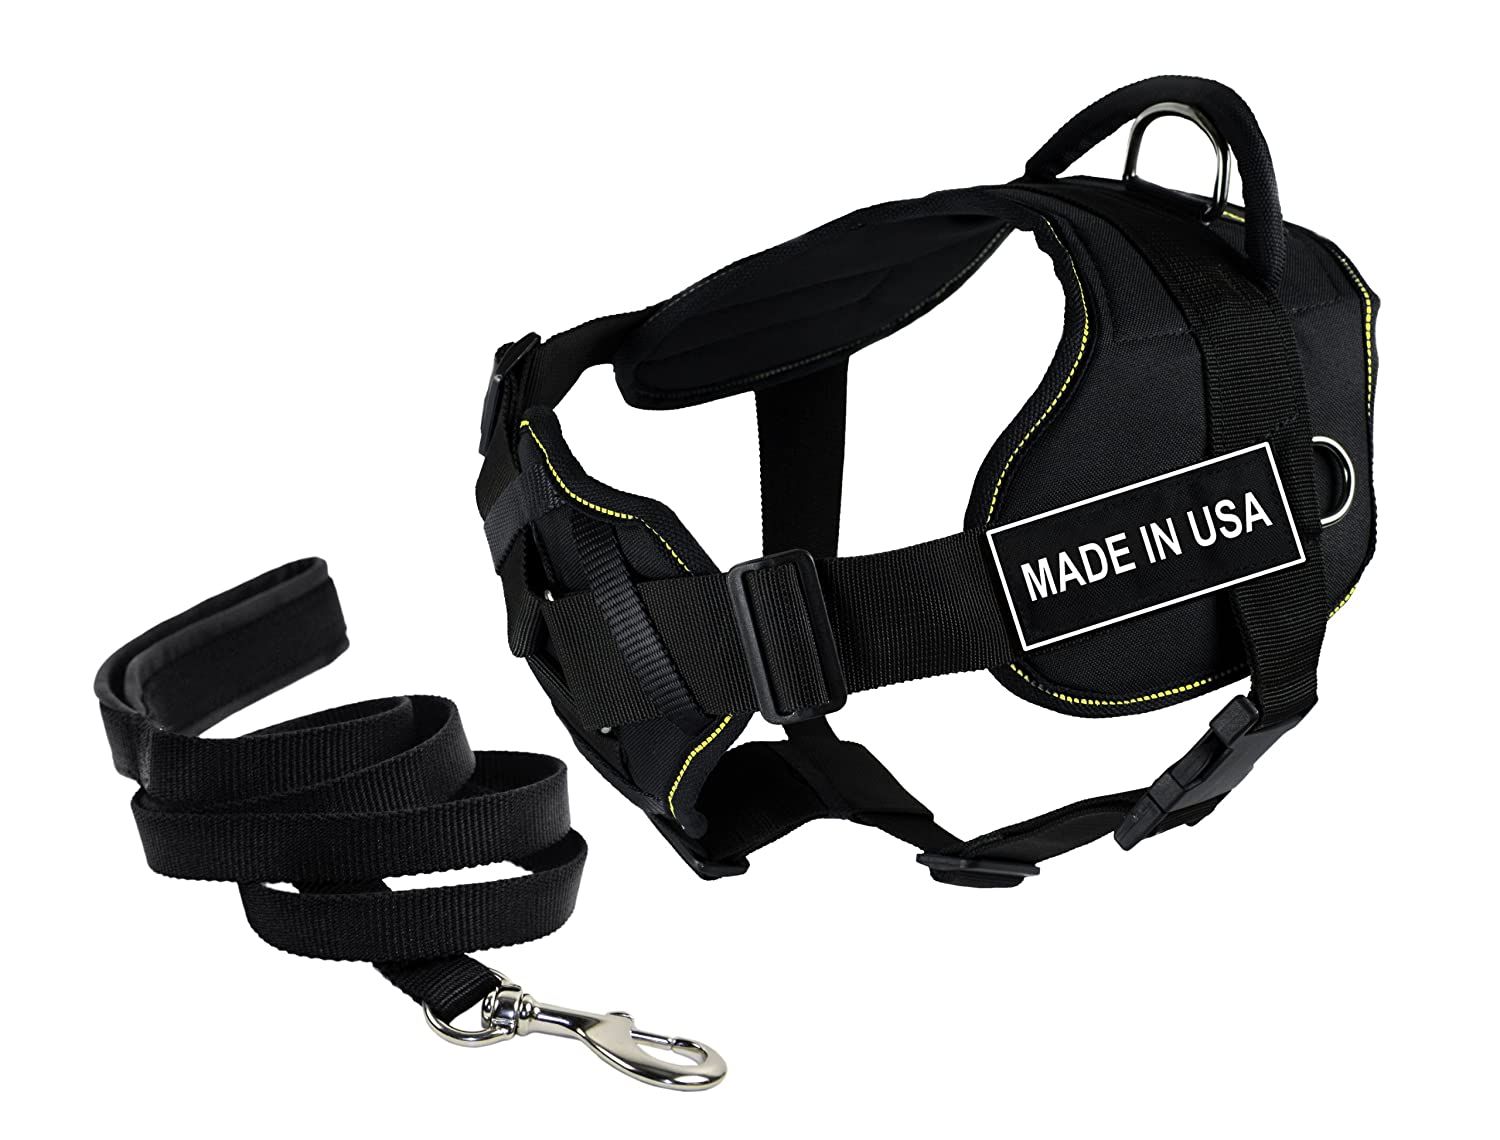 Dean & Tyler's DT Fun Chest Support MADE IN USA Harness, Large, with 6 ft Padded Puppy Leash.